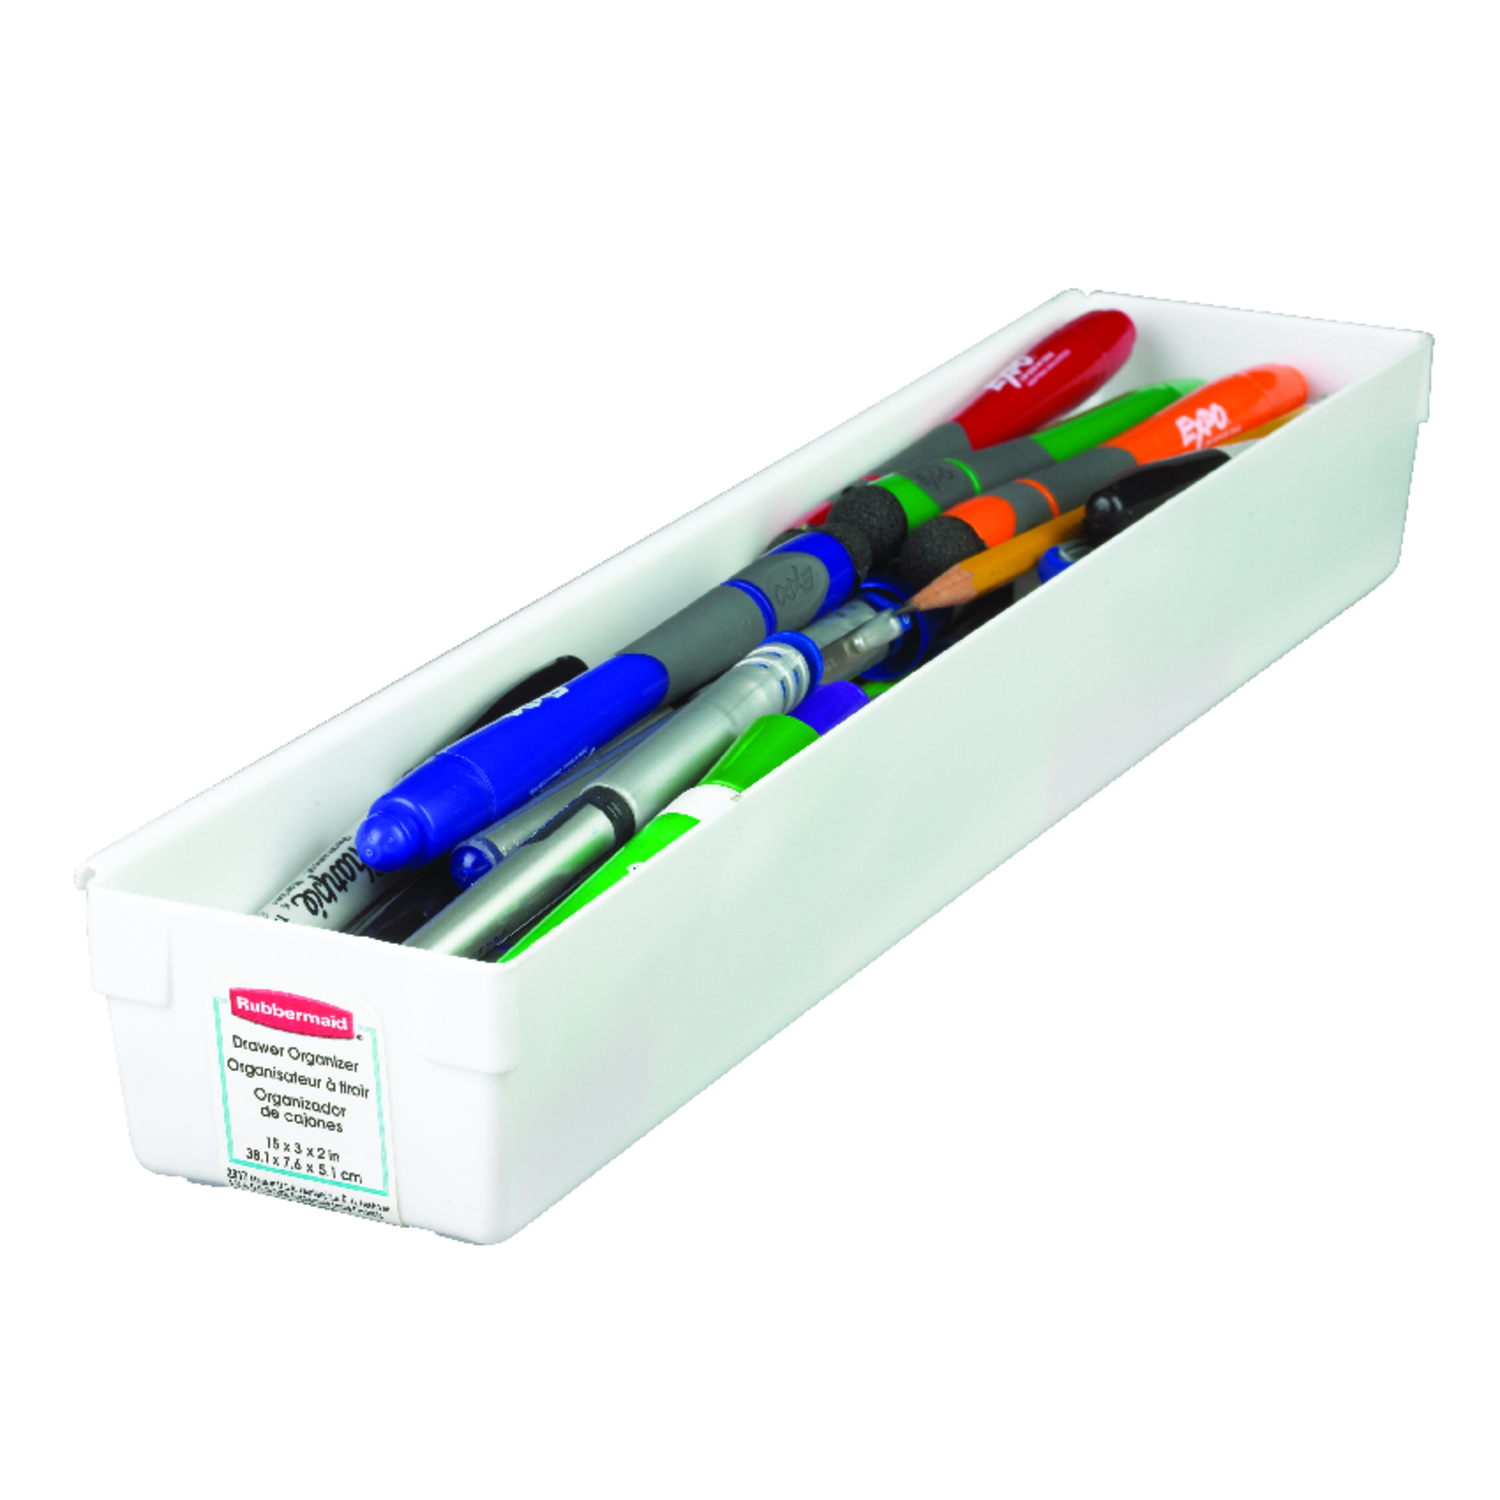 Rubbermaid 2 In. H X 3 In. W X 15 In. L White Plastic Drawer Organizer    Ace Hardware